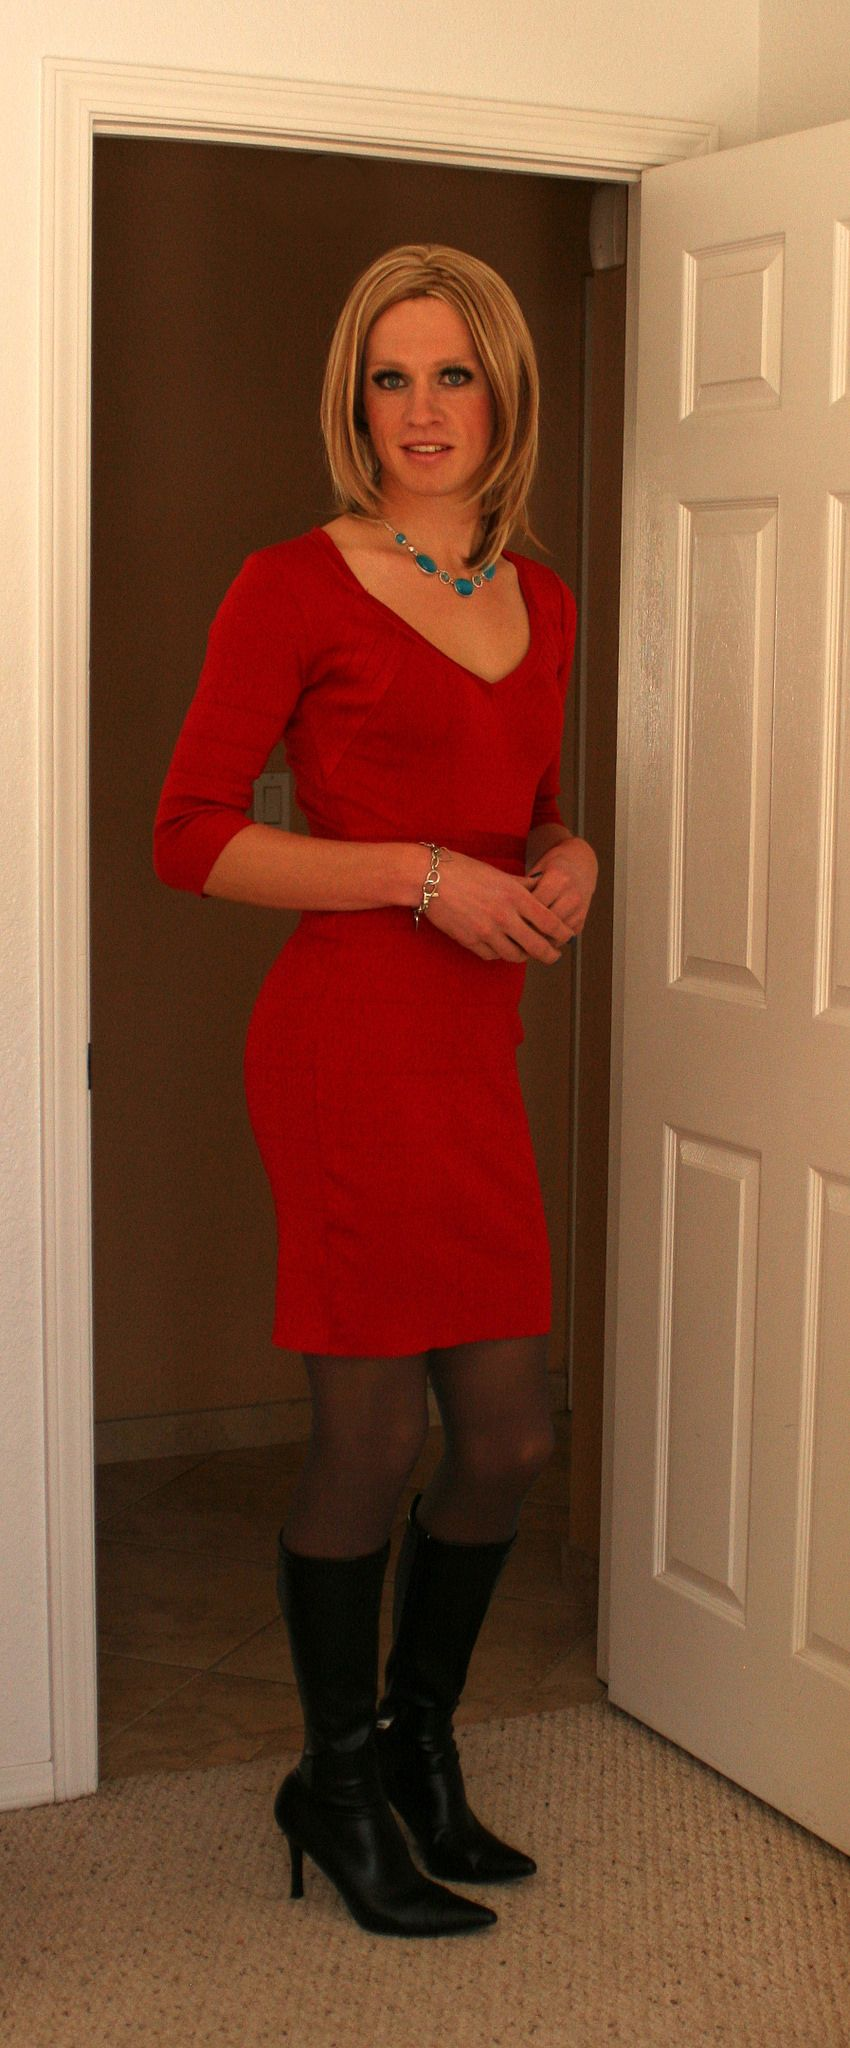 S TGIRL WORLD Male Femininity and Gender Role Reversal: The New World that Awaits!!!